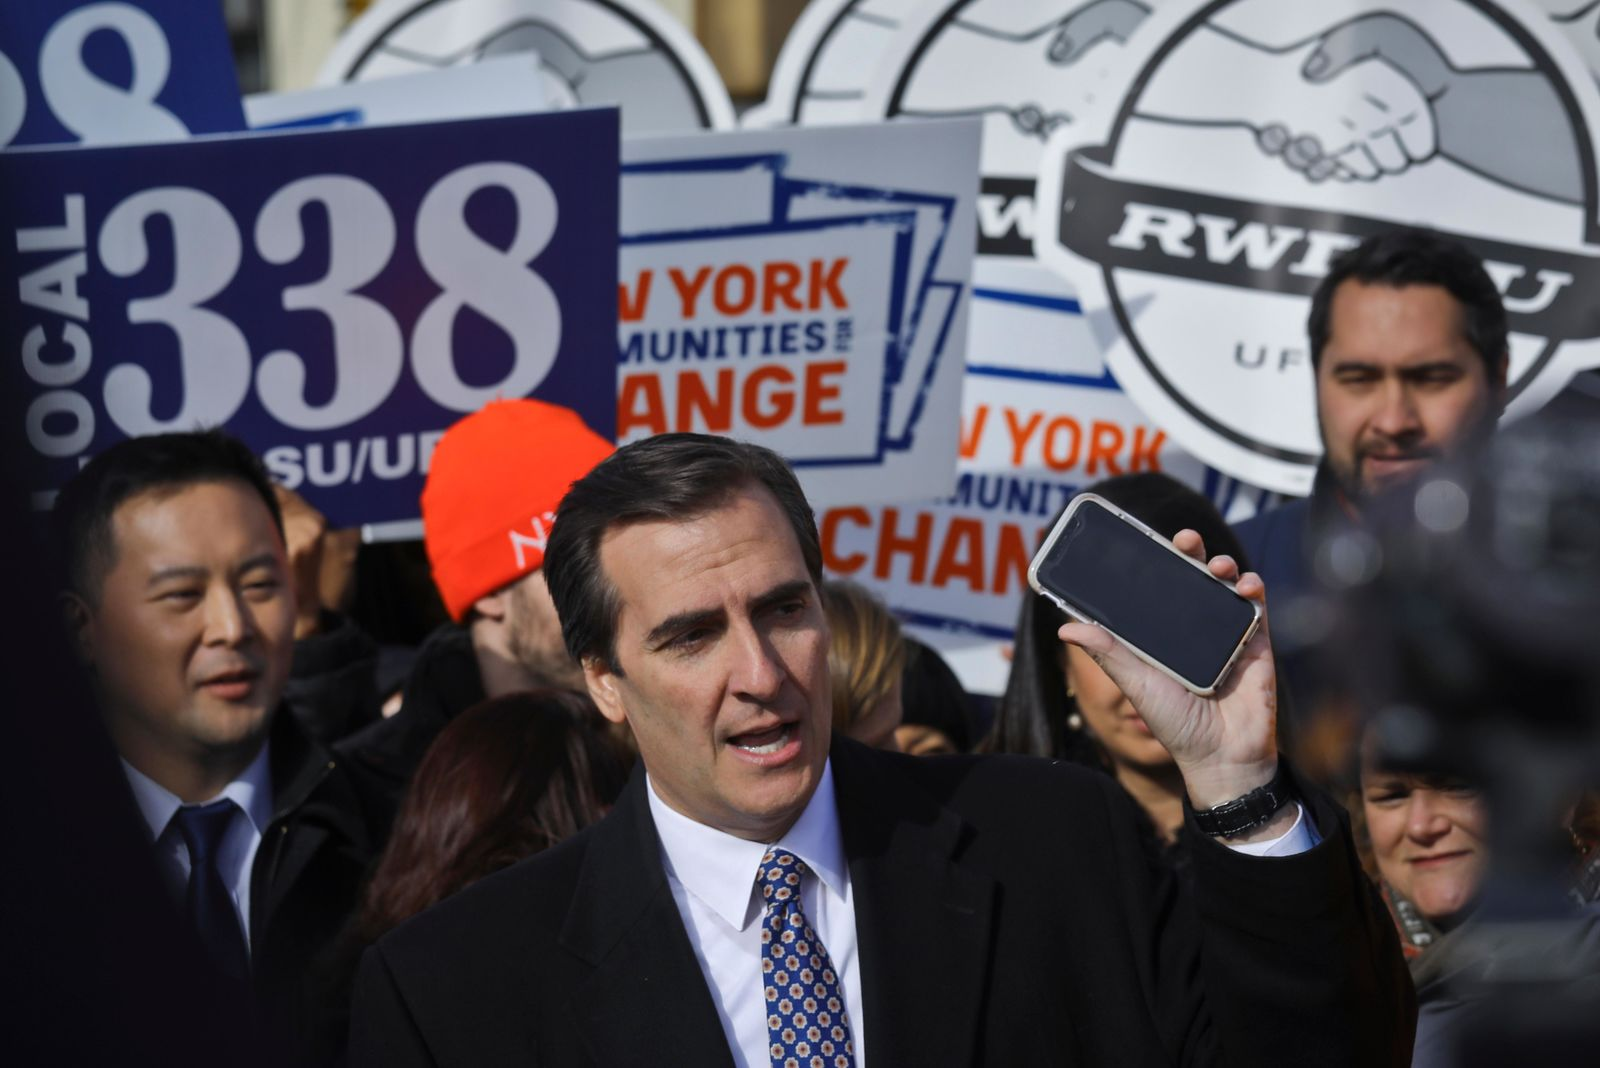 FILE - In this Nov. 14, 2018 file photo, New York State Sen. Michael Gianaris, center, calls on supporters to remove the Amazon app from their phones and boycott the company, as he address a coalition rally and press conference in New York. The first clue that opposition to the project could succeed in derailing the deal came in early February, when Gianaris was appointed to a seat on a state panel that often has to approve state funding for big economic development projects. According to the rules governing the 5-member Public Authorities Control Board, funds for any individual project can be vetoed by a single member, meaning that if the Amazon deal went before the board, Gianaris could kill it unilaterally. (AP Photo/Bebeto Matthews, File)